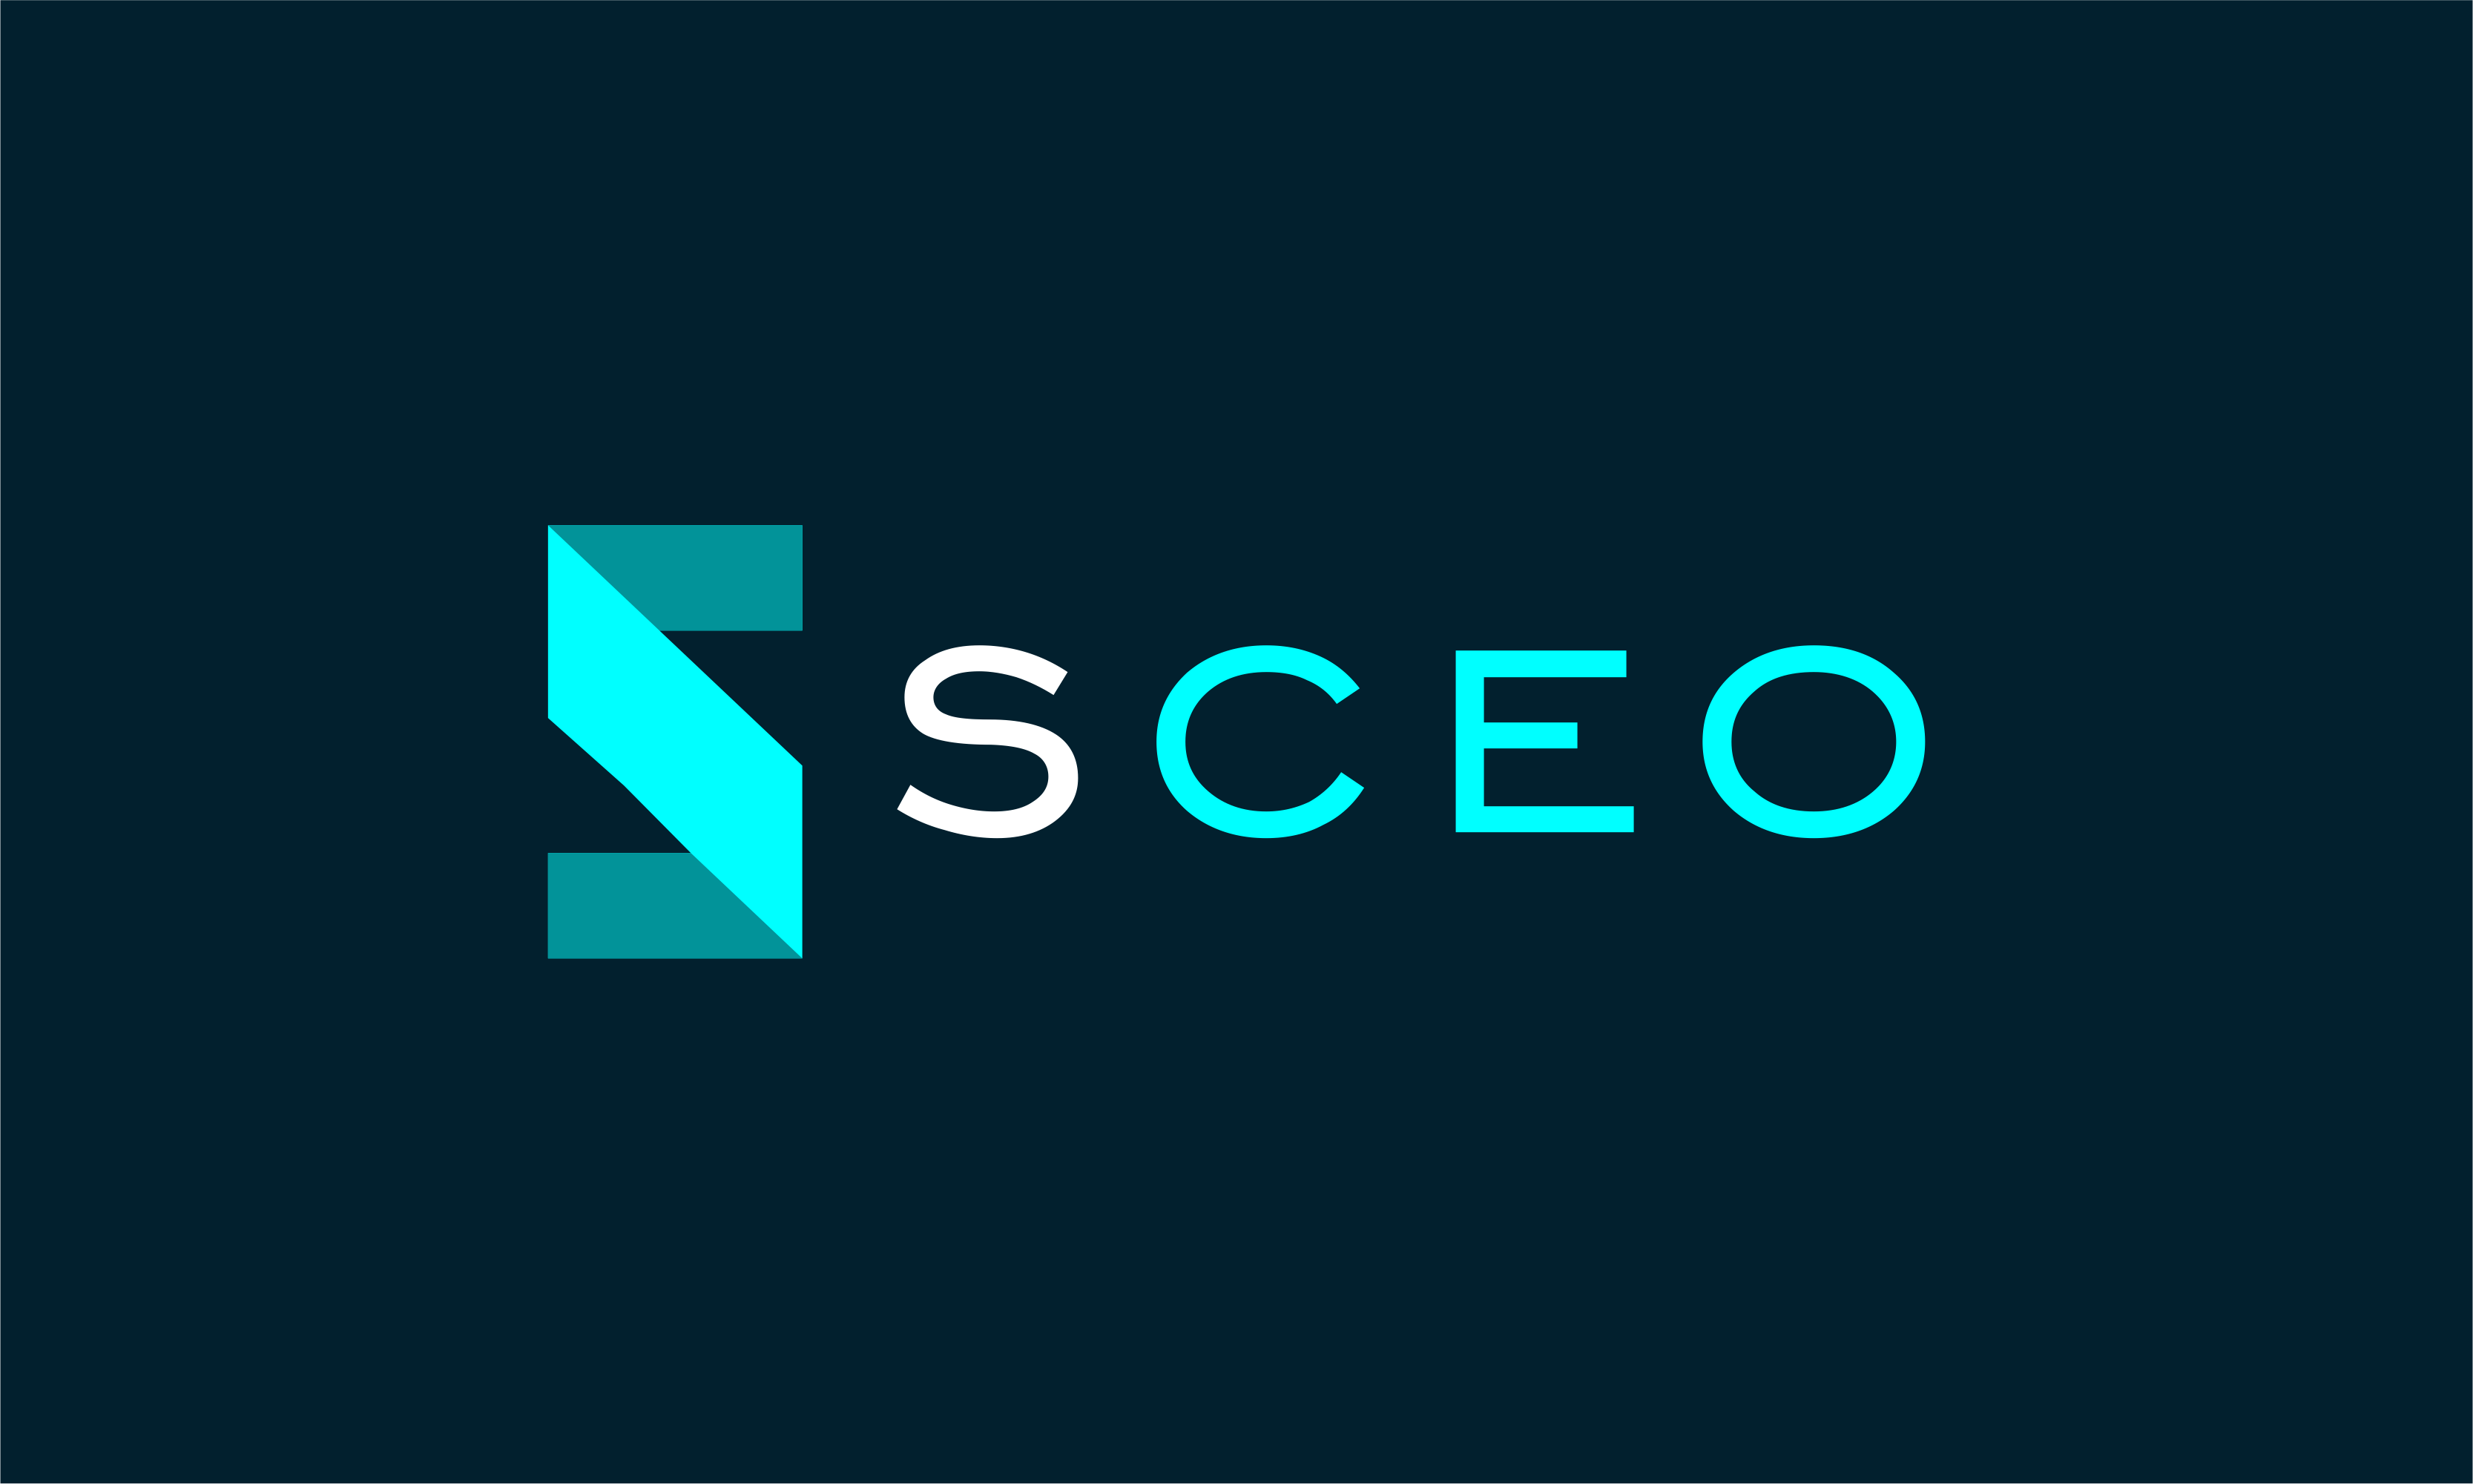 Sceo